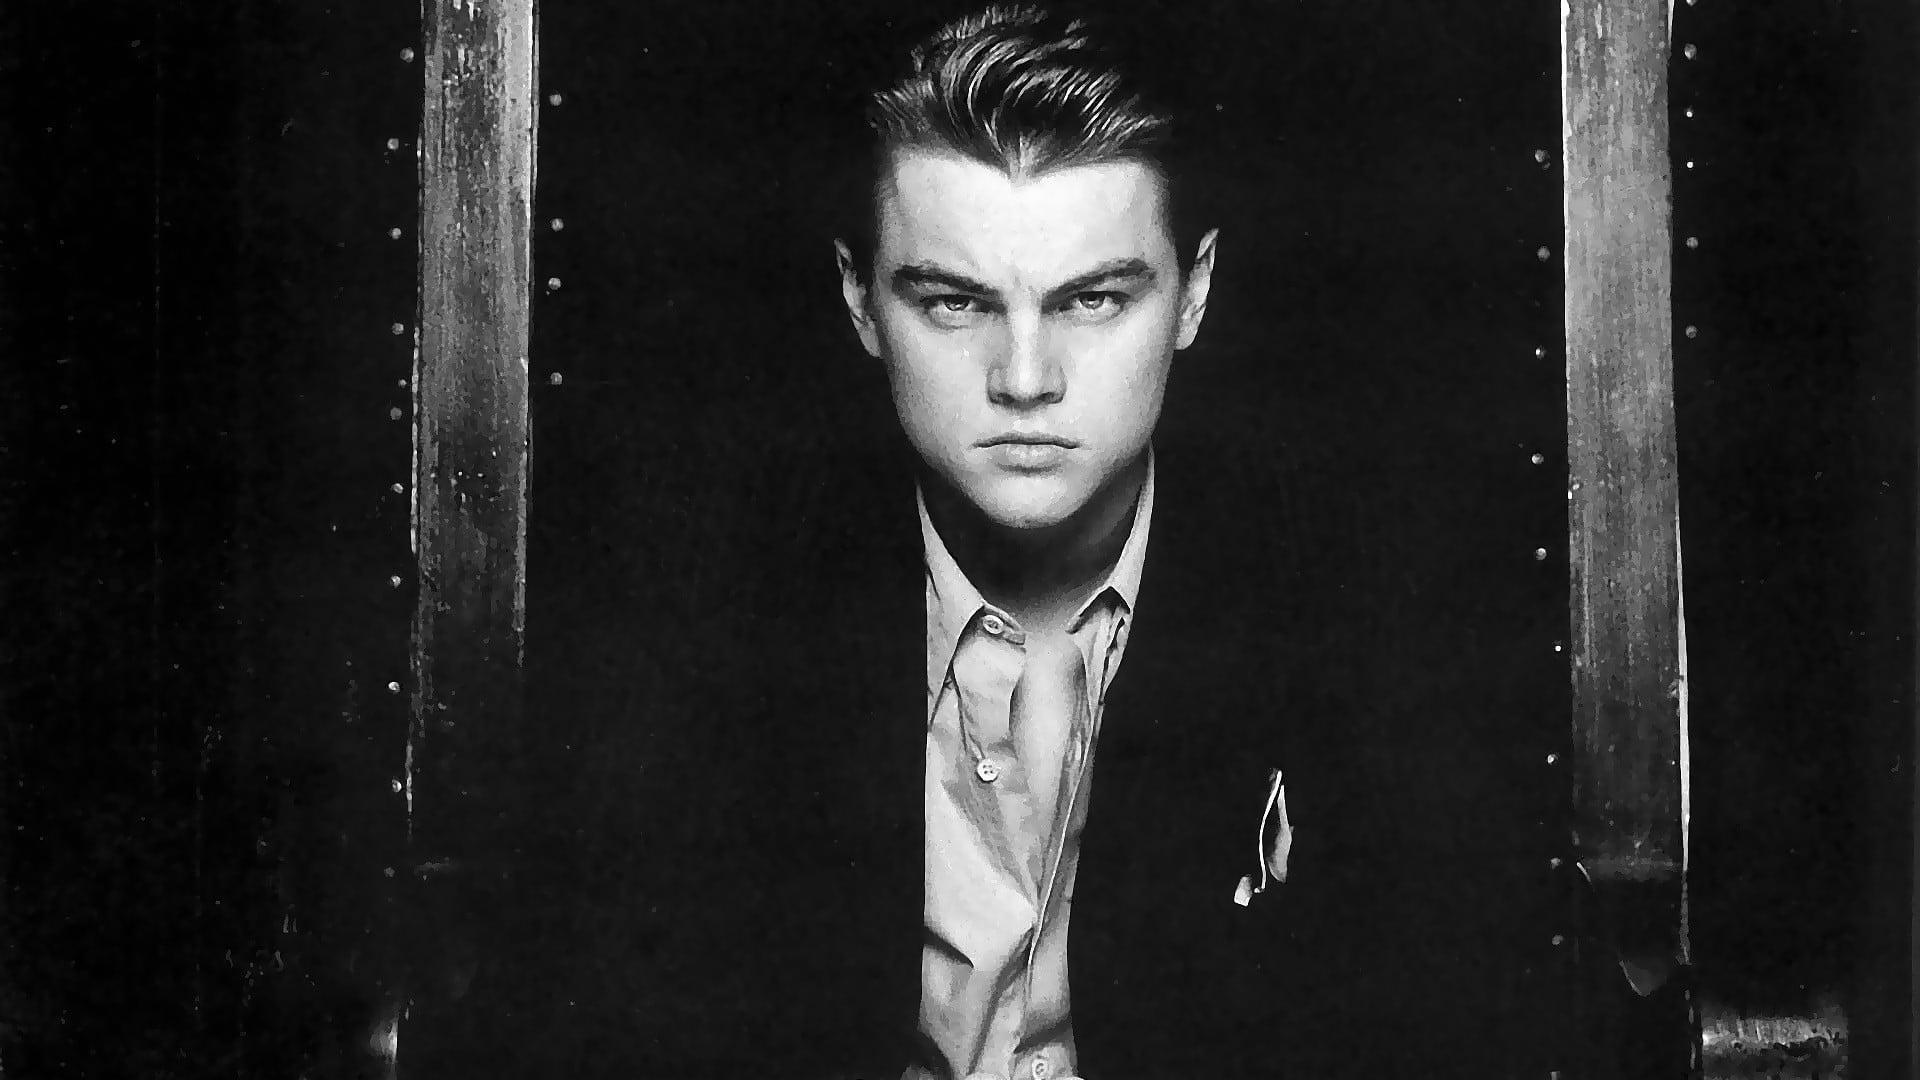 Leonardo DiCaprio Wallpaper – A Wonderful wallpaper Design For Every Room in Your House